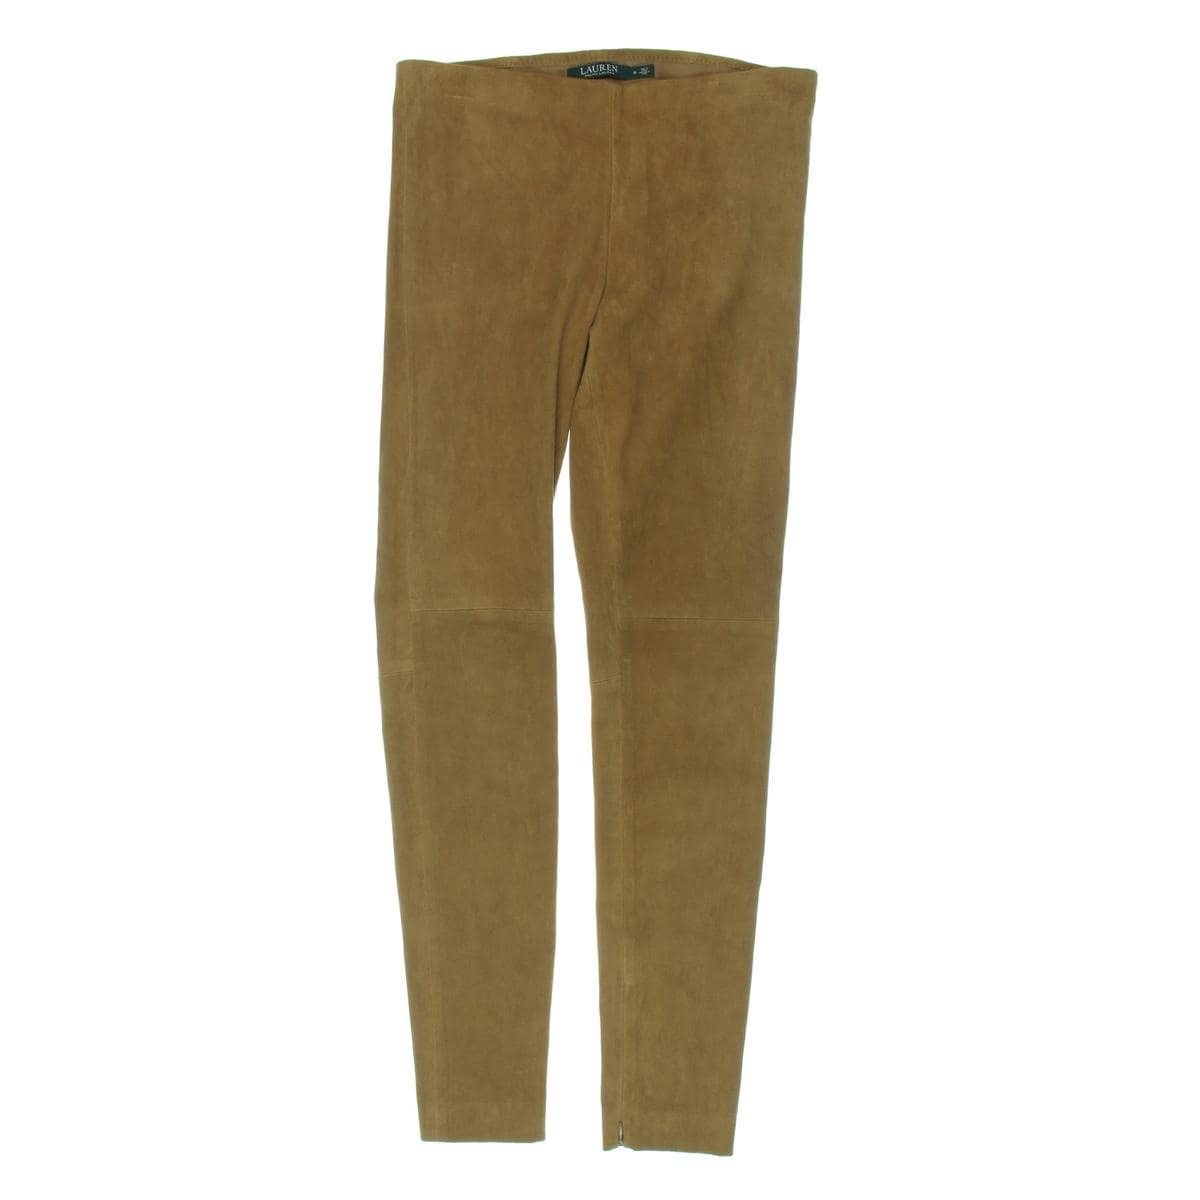 79f21494e1be4 Shop Lauren Ralph Lauren Womens Skinny Pants Lamb Suede Ankle Zippers -  Free Shipping Today - Overstock - 18805779